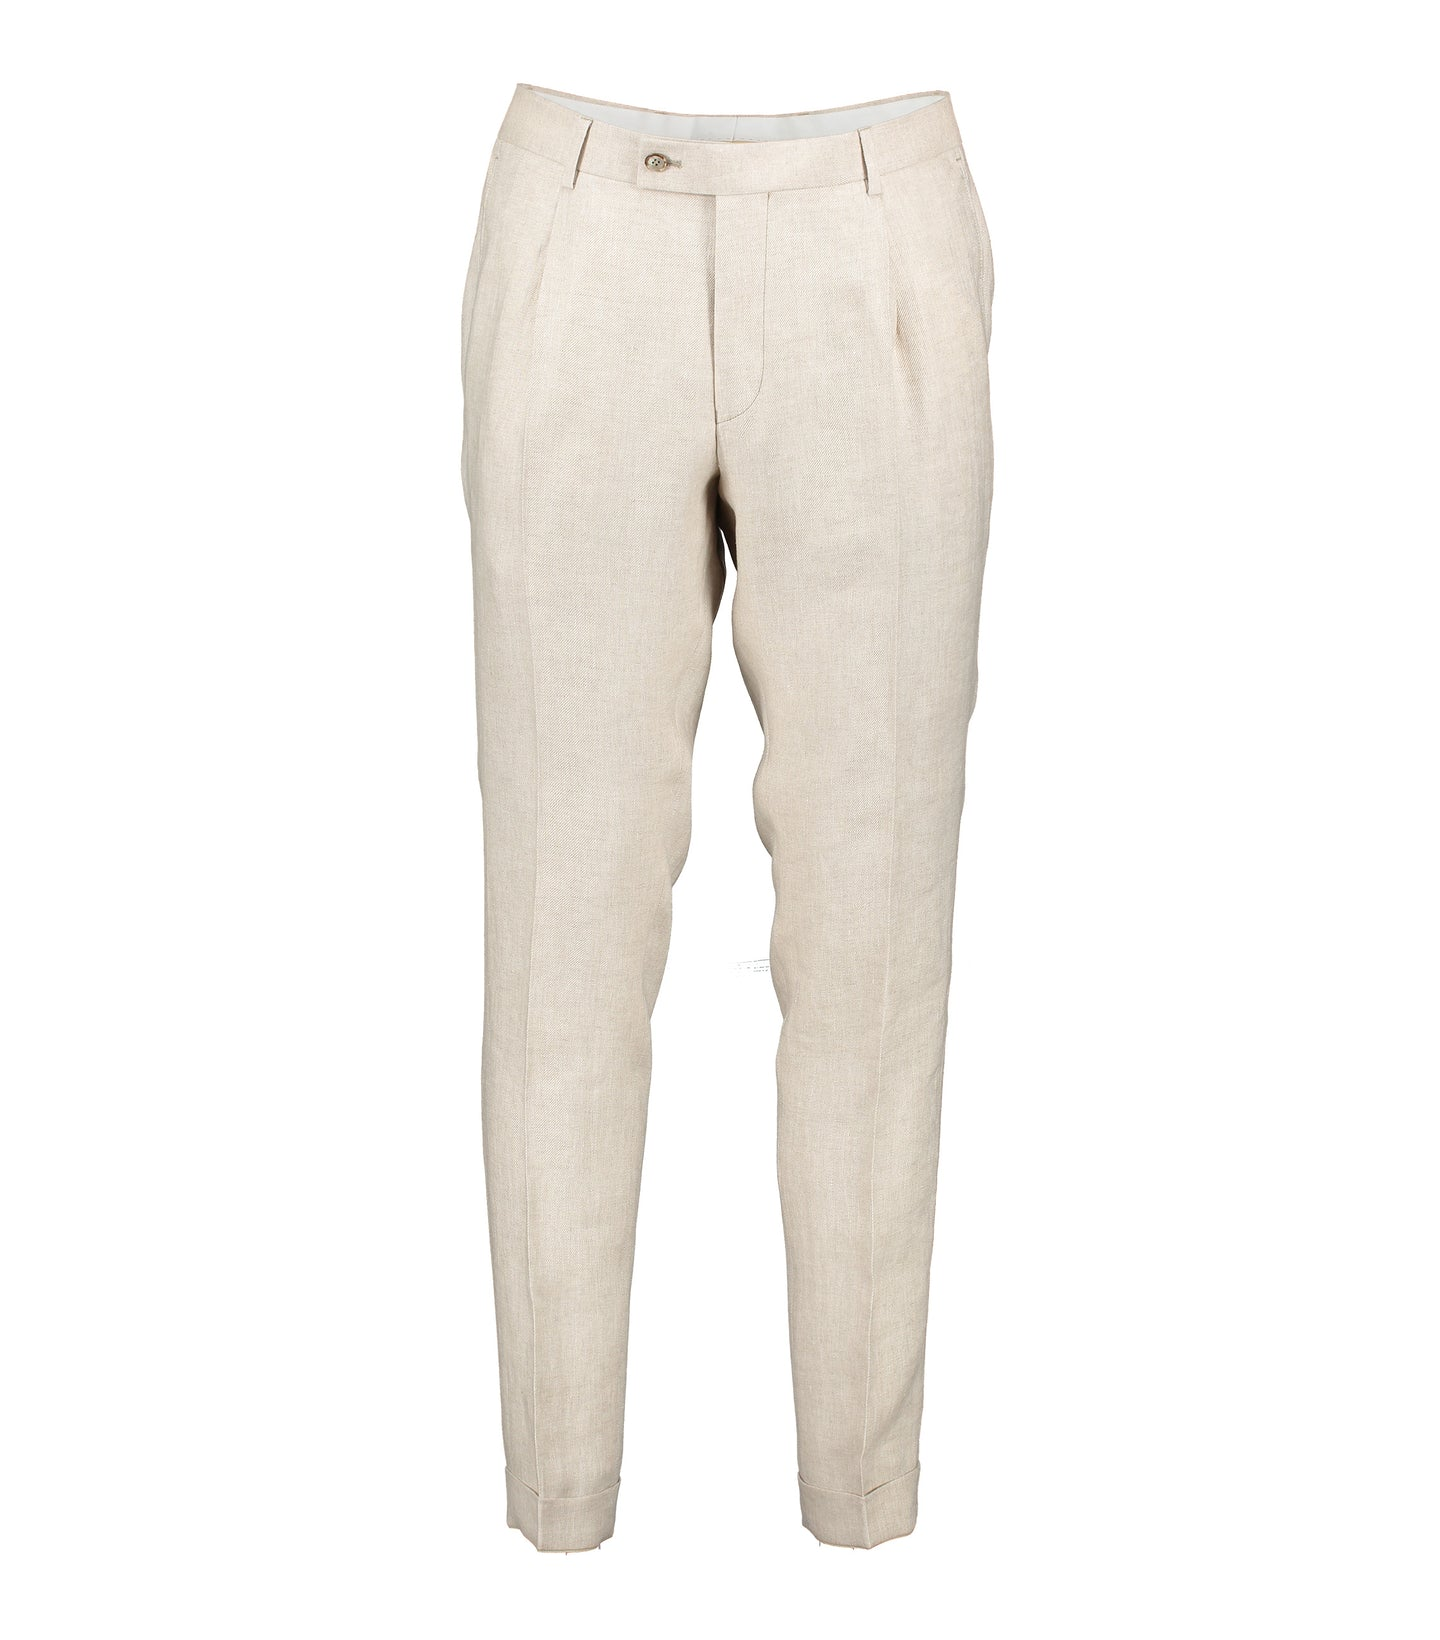 Alex Beige Linen Trousers